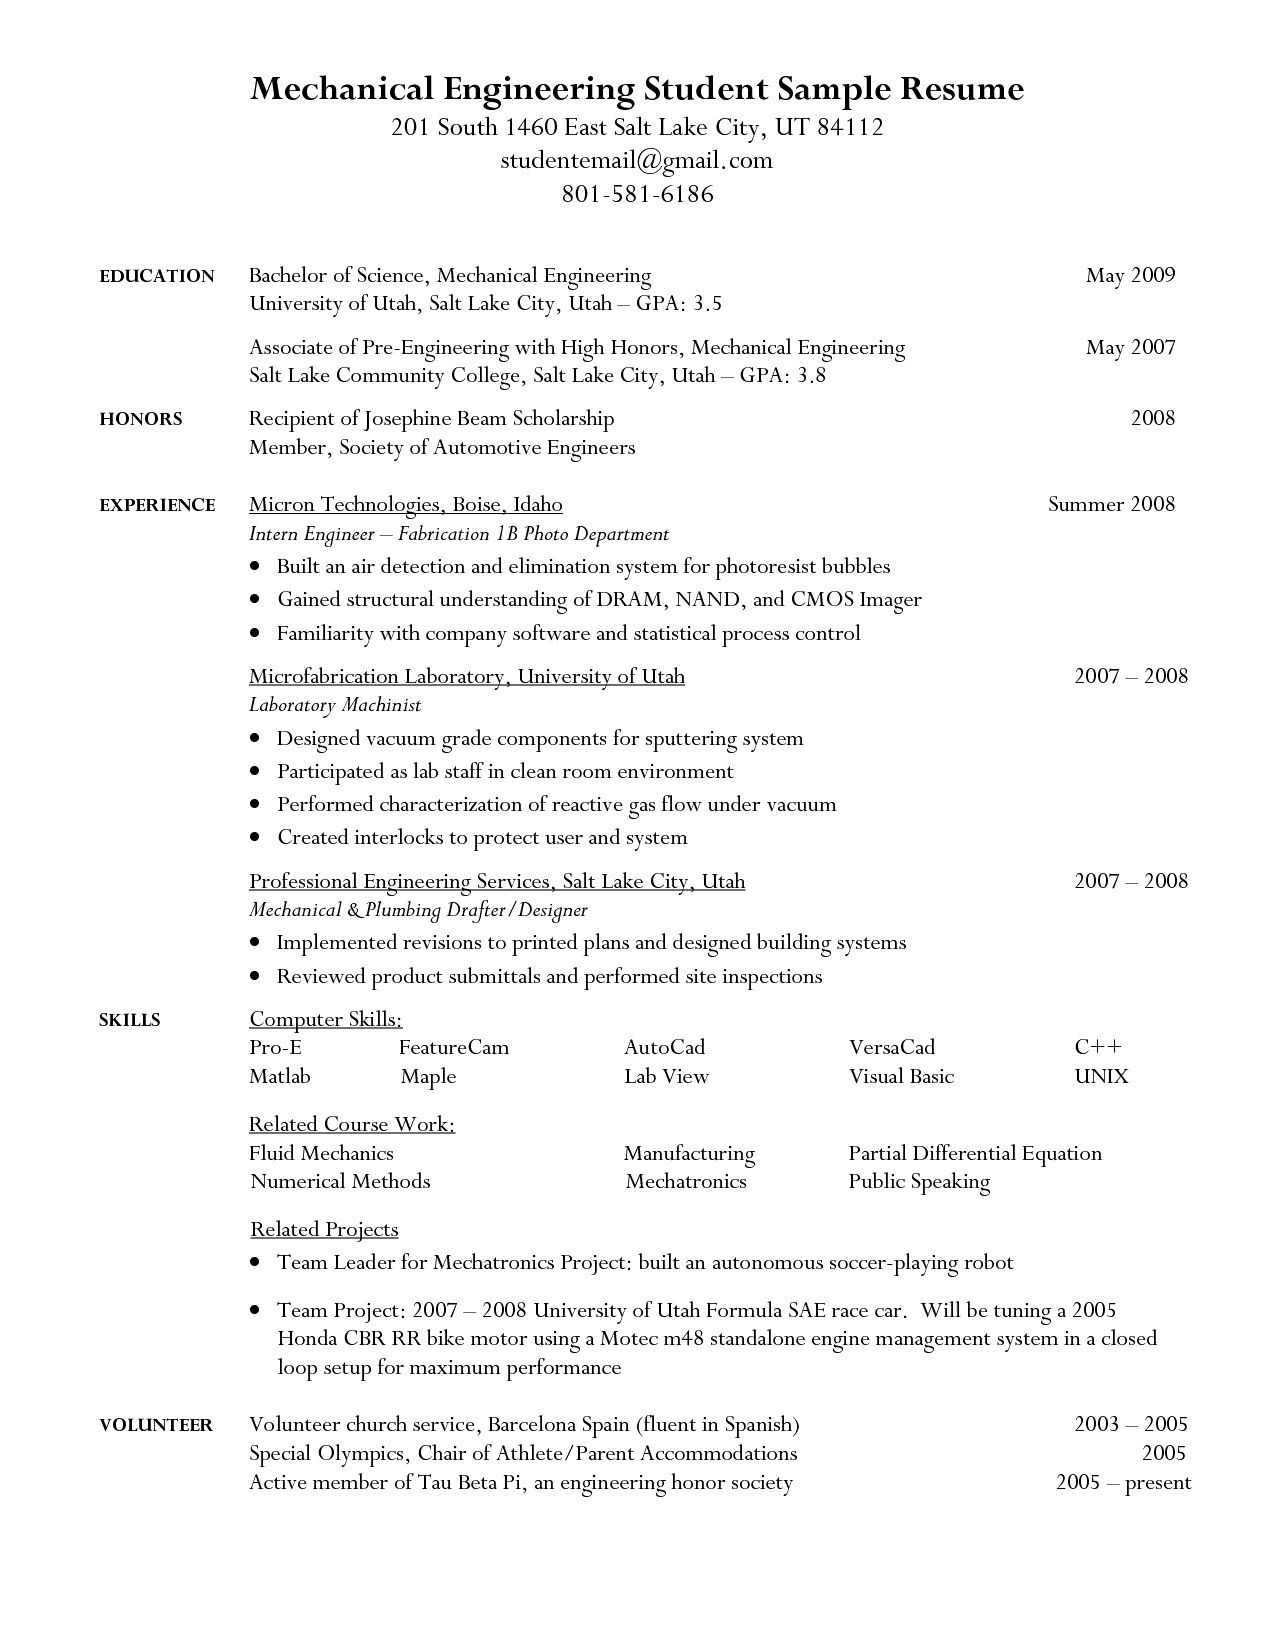 Technician Resume Computer Technician Resume Samples Hardware Engineer Engineering